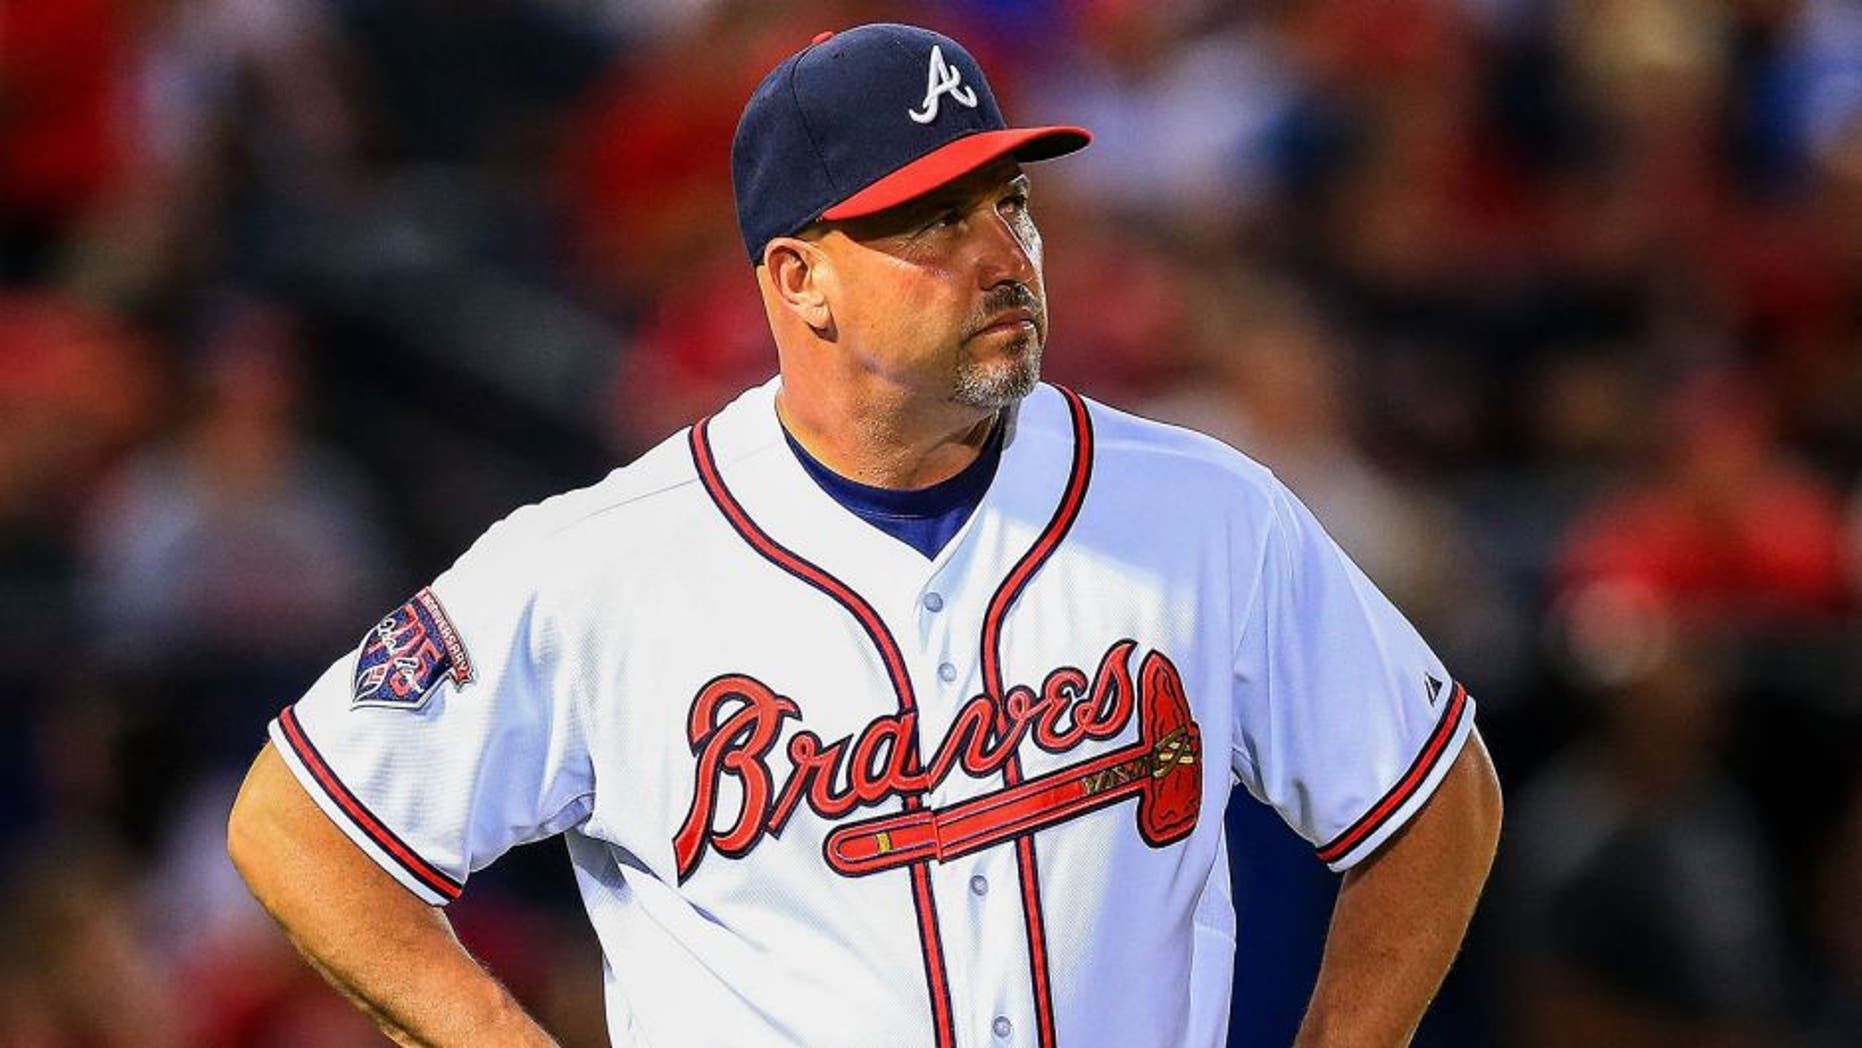 May 5, 2014; Atlanta, GA, USA; Atlanta Braves manager Fredi Gonzalez (33) waits on the field during a replay challenge in the sixth inning against the St. Louis Cardinals at Turner Field. Mandatory Credit: Daniel Shirey-USA TODAY Sports